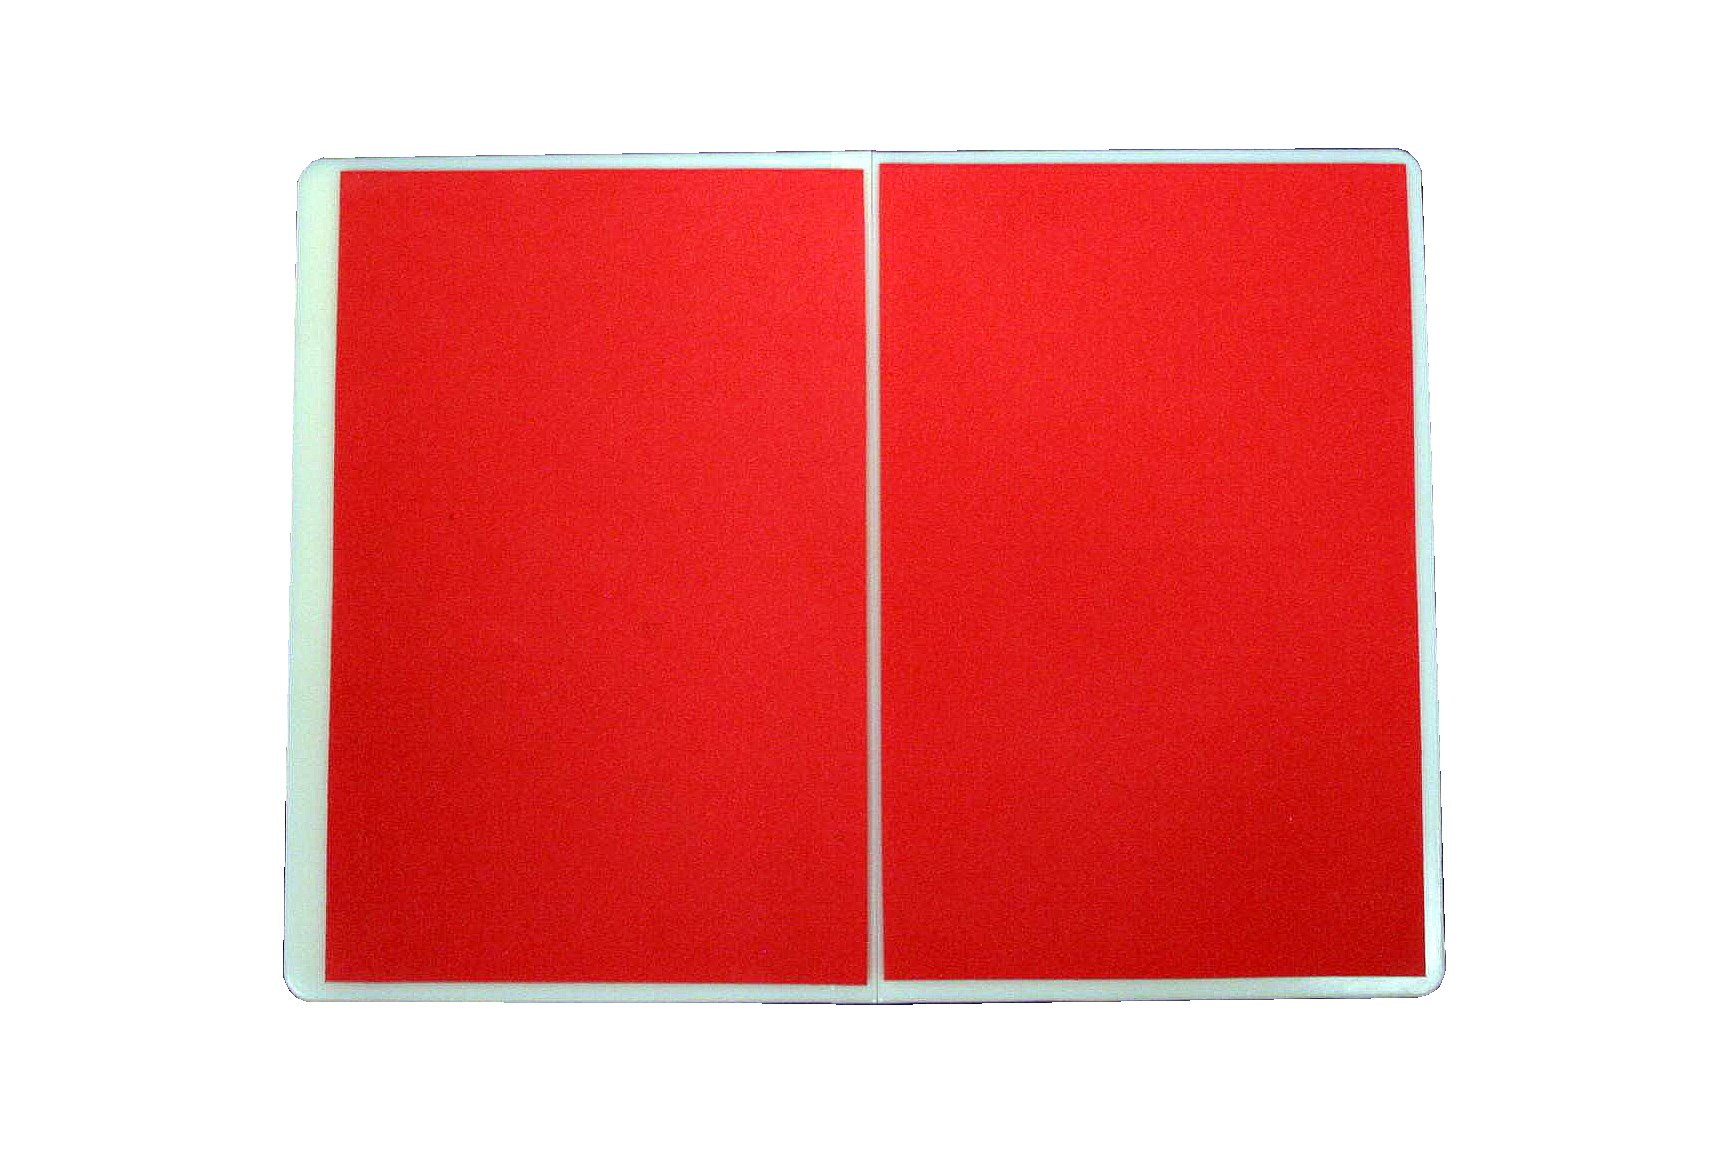 Ace Martial Arts Supply Rebreakable Board